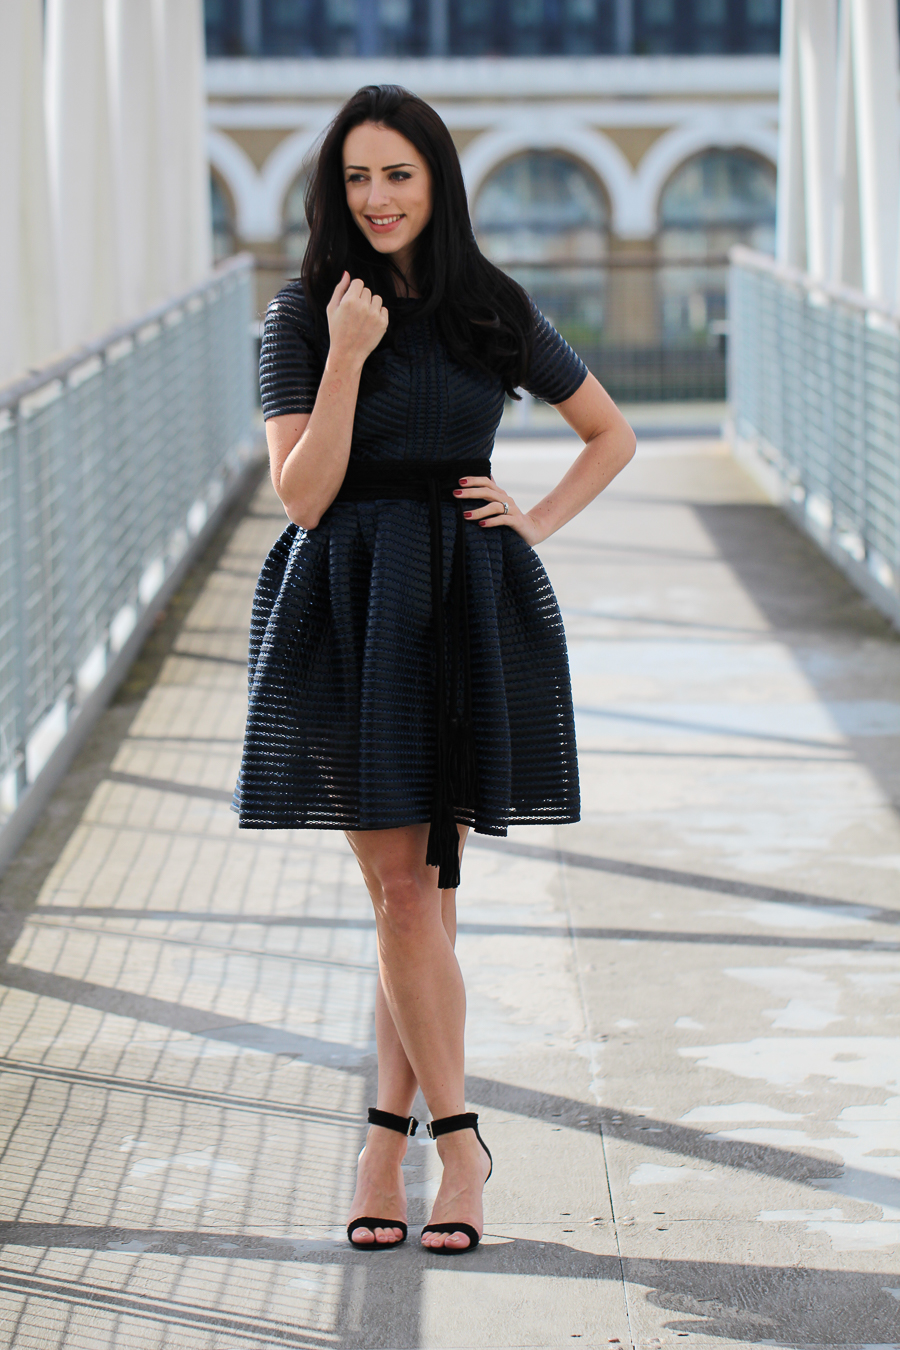 Clutch and carry on - sabrina chakici - london fashion blogger - london fitness blogger_-56